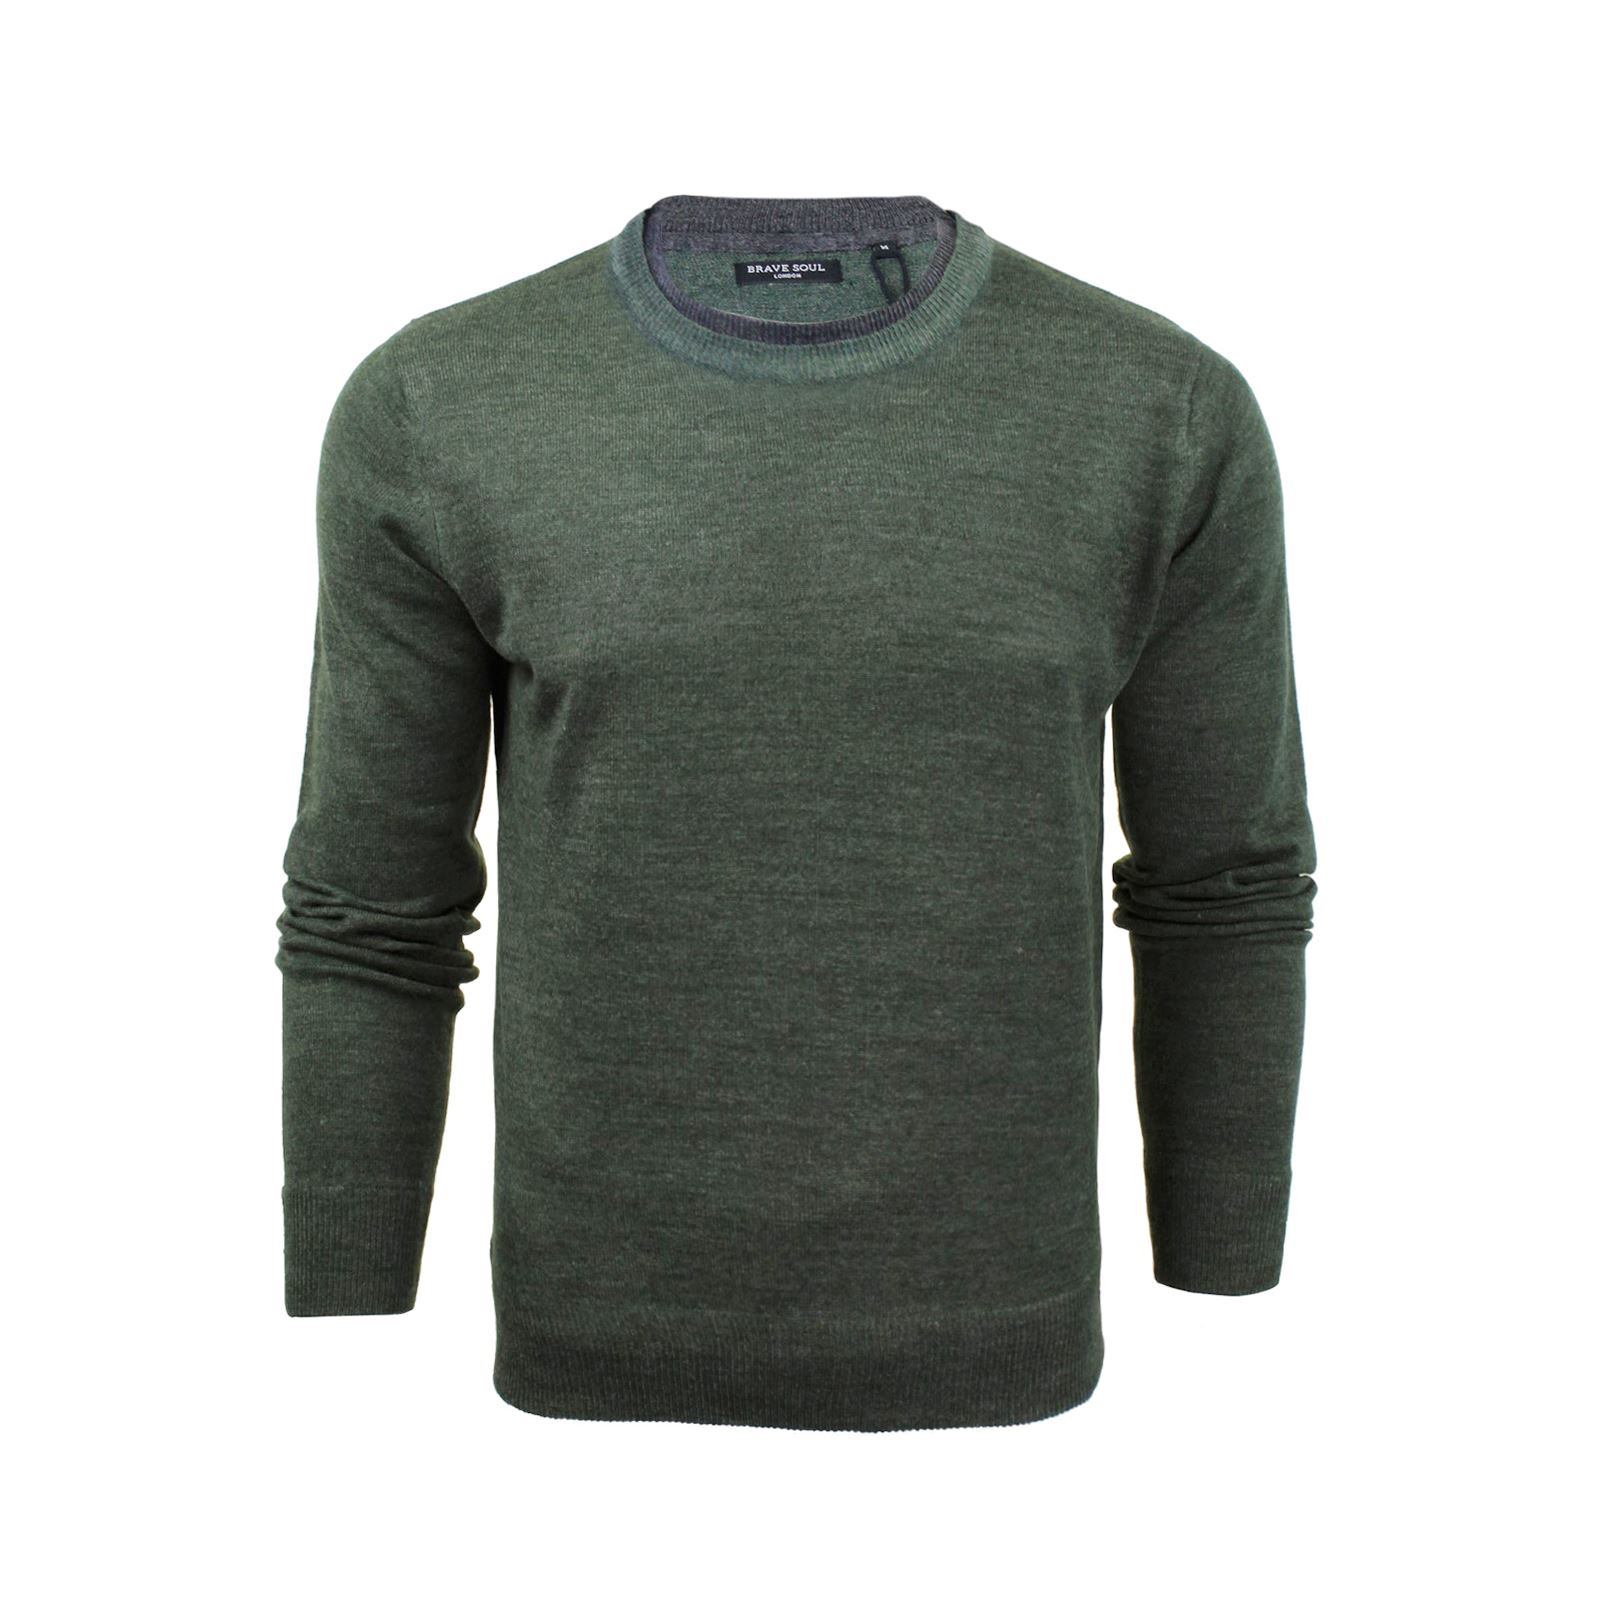 Mens-Jumper-Brave-Soul-Knitted-Sweater-In-Various-Styles thumbnail 6